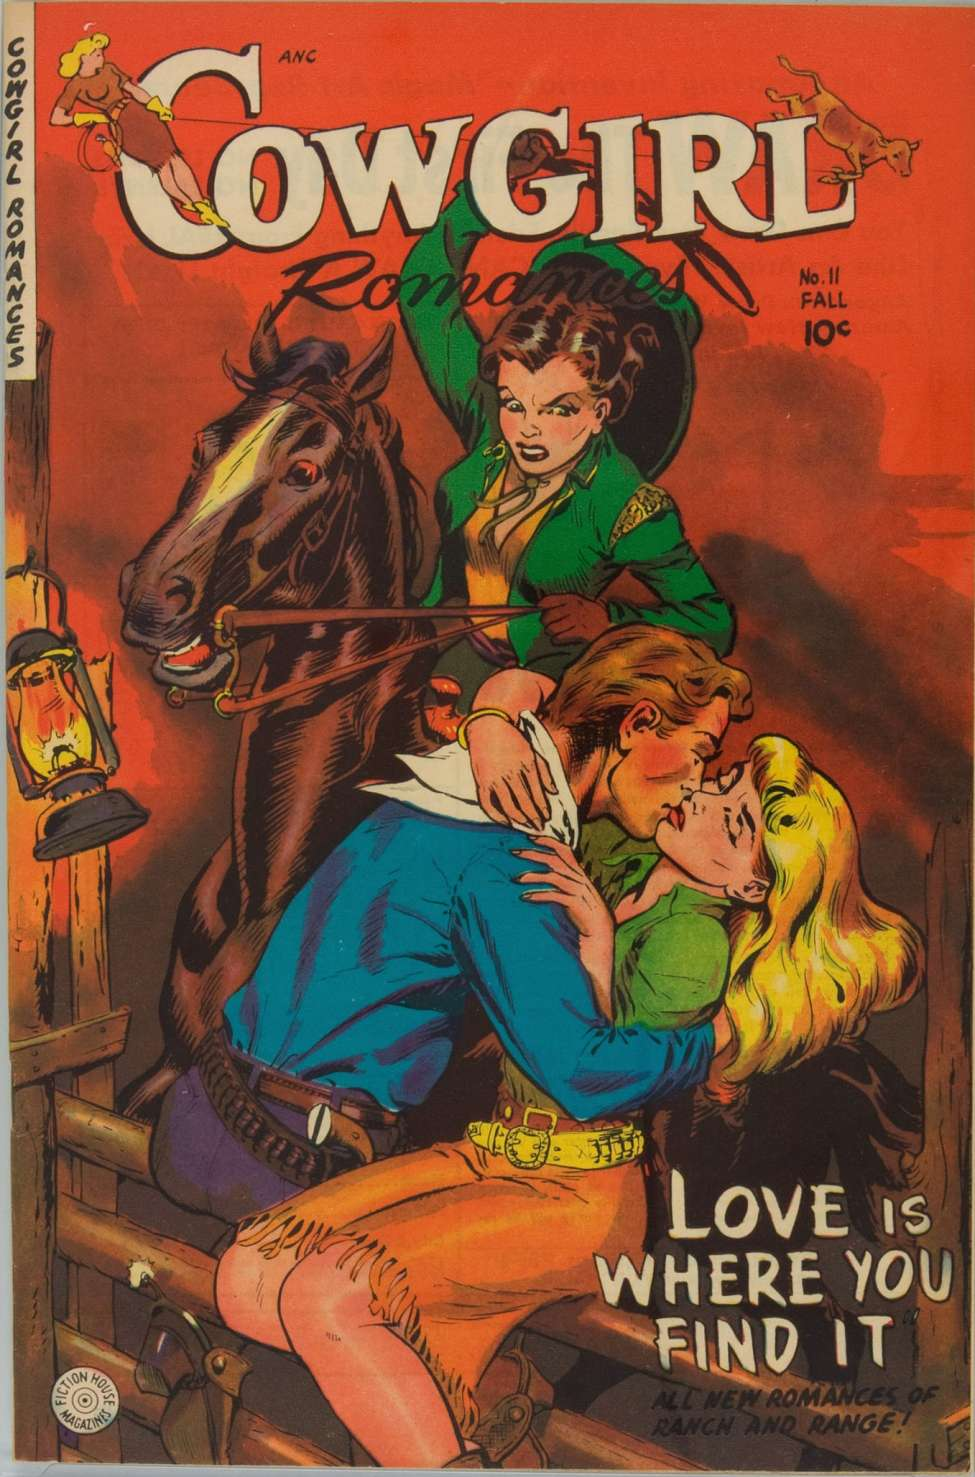 Comic Book Cover For Cowgirl Romances #11